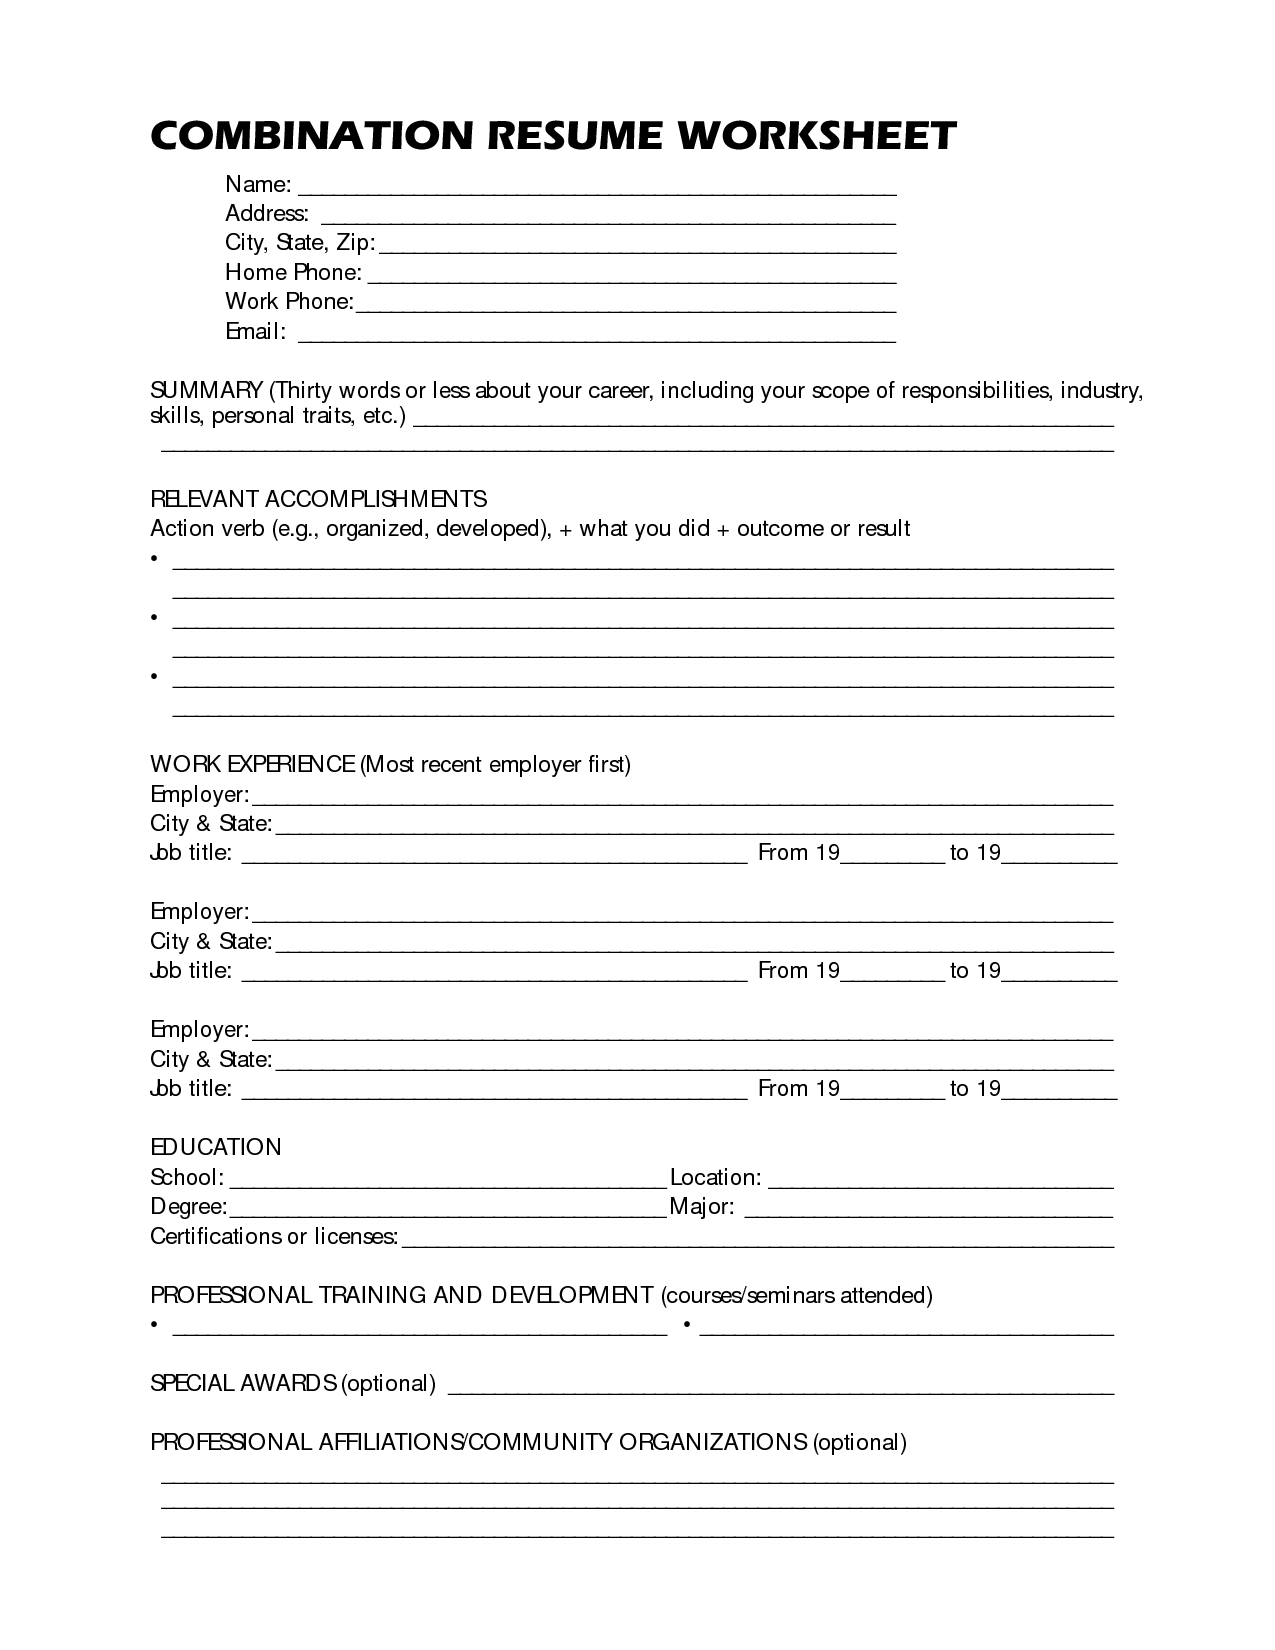 Resume Format Worksheet High School Printable And